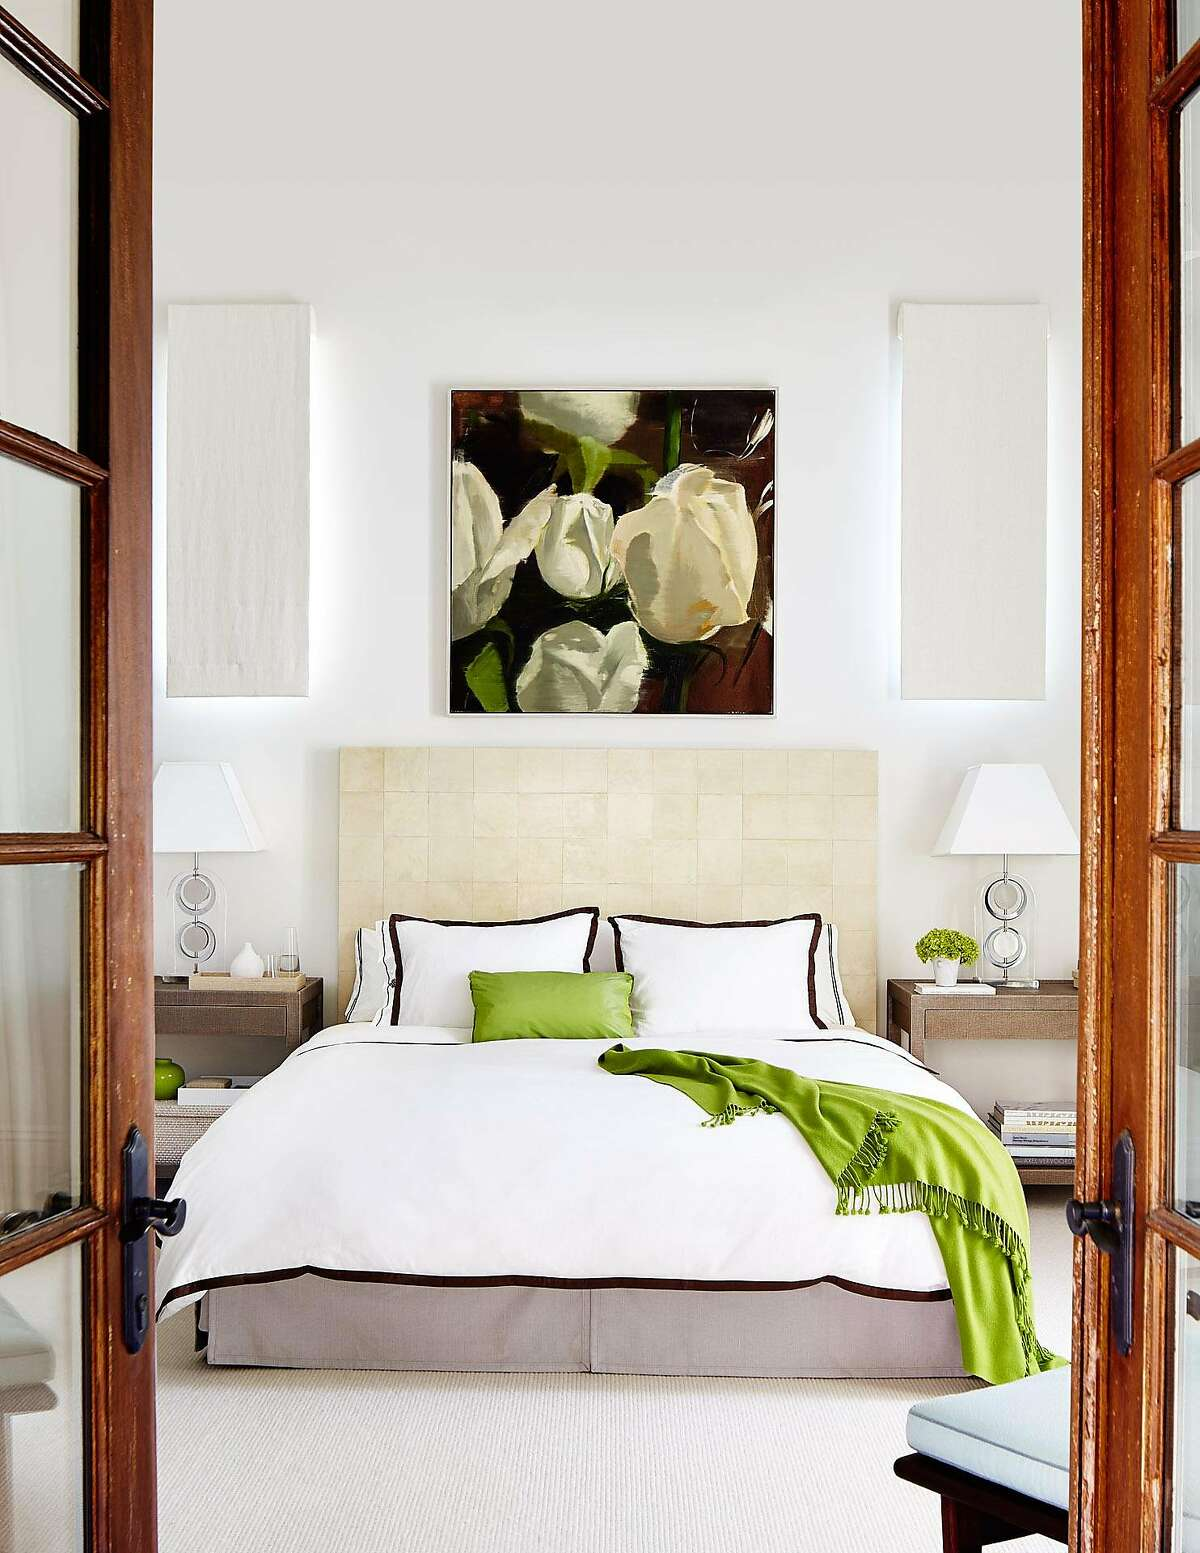 According to San Francisco designer Martha Angus, art can do wonders to perk up a room. �We like bold canvases of color or an abstract swish of paint on a neutral field,� she says. �Crisp white always says �new beginnings� too.� A white duvet in a bedroom or white outdoor slipcovers for the living room sofa are two easy ways she transforms a space. �They can all be thrown in the wash,� says Angus, who also suggests swapping out rugs for something fresh and natural such as jute or seagrass.